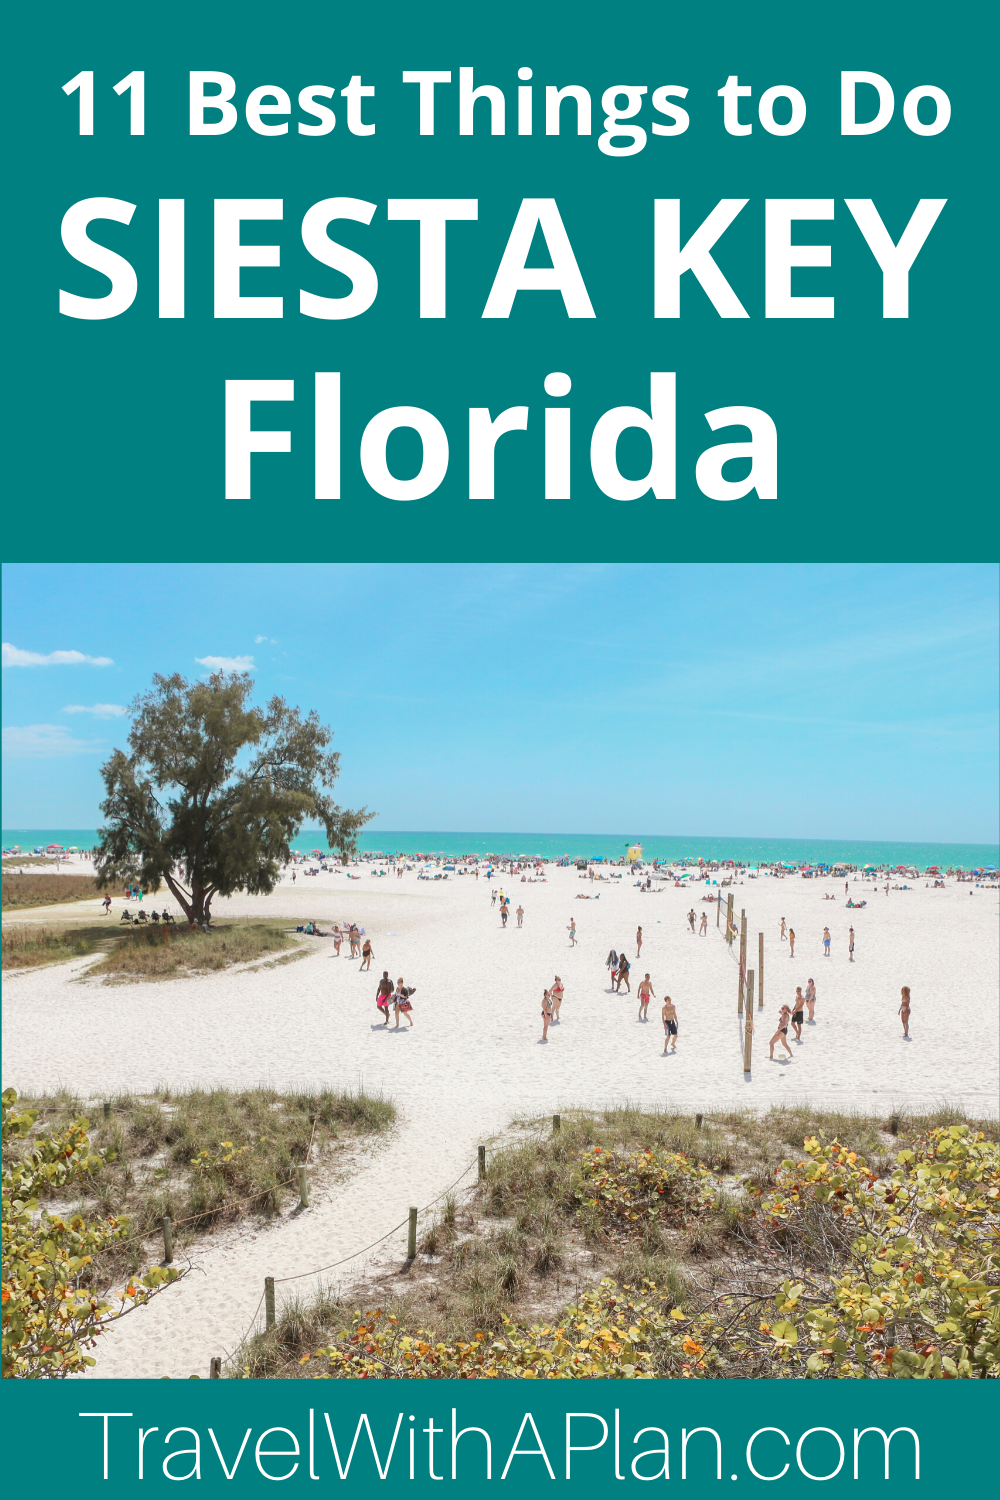 Click here for an ultra detailed article on the 11 Best Things to do in Siesta Key, Florida!  Find out all of the fun things to do in Siesta Key for both families and adults.  These ocean and land activities will ensure that you have a perfect Siesta Key vacation!  #thingstodoinsiestakeyflorida #thingstodoinsiestakey #thingstodoinsiestakeyfloridakids #siestakeyfloridathingstodokids #siestakeyfloridathingstodo #siestakeyfloridathingstodoonthebeach